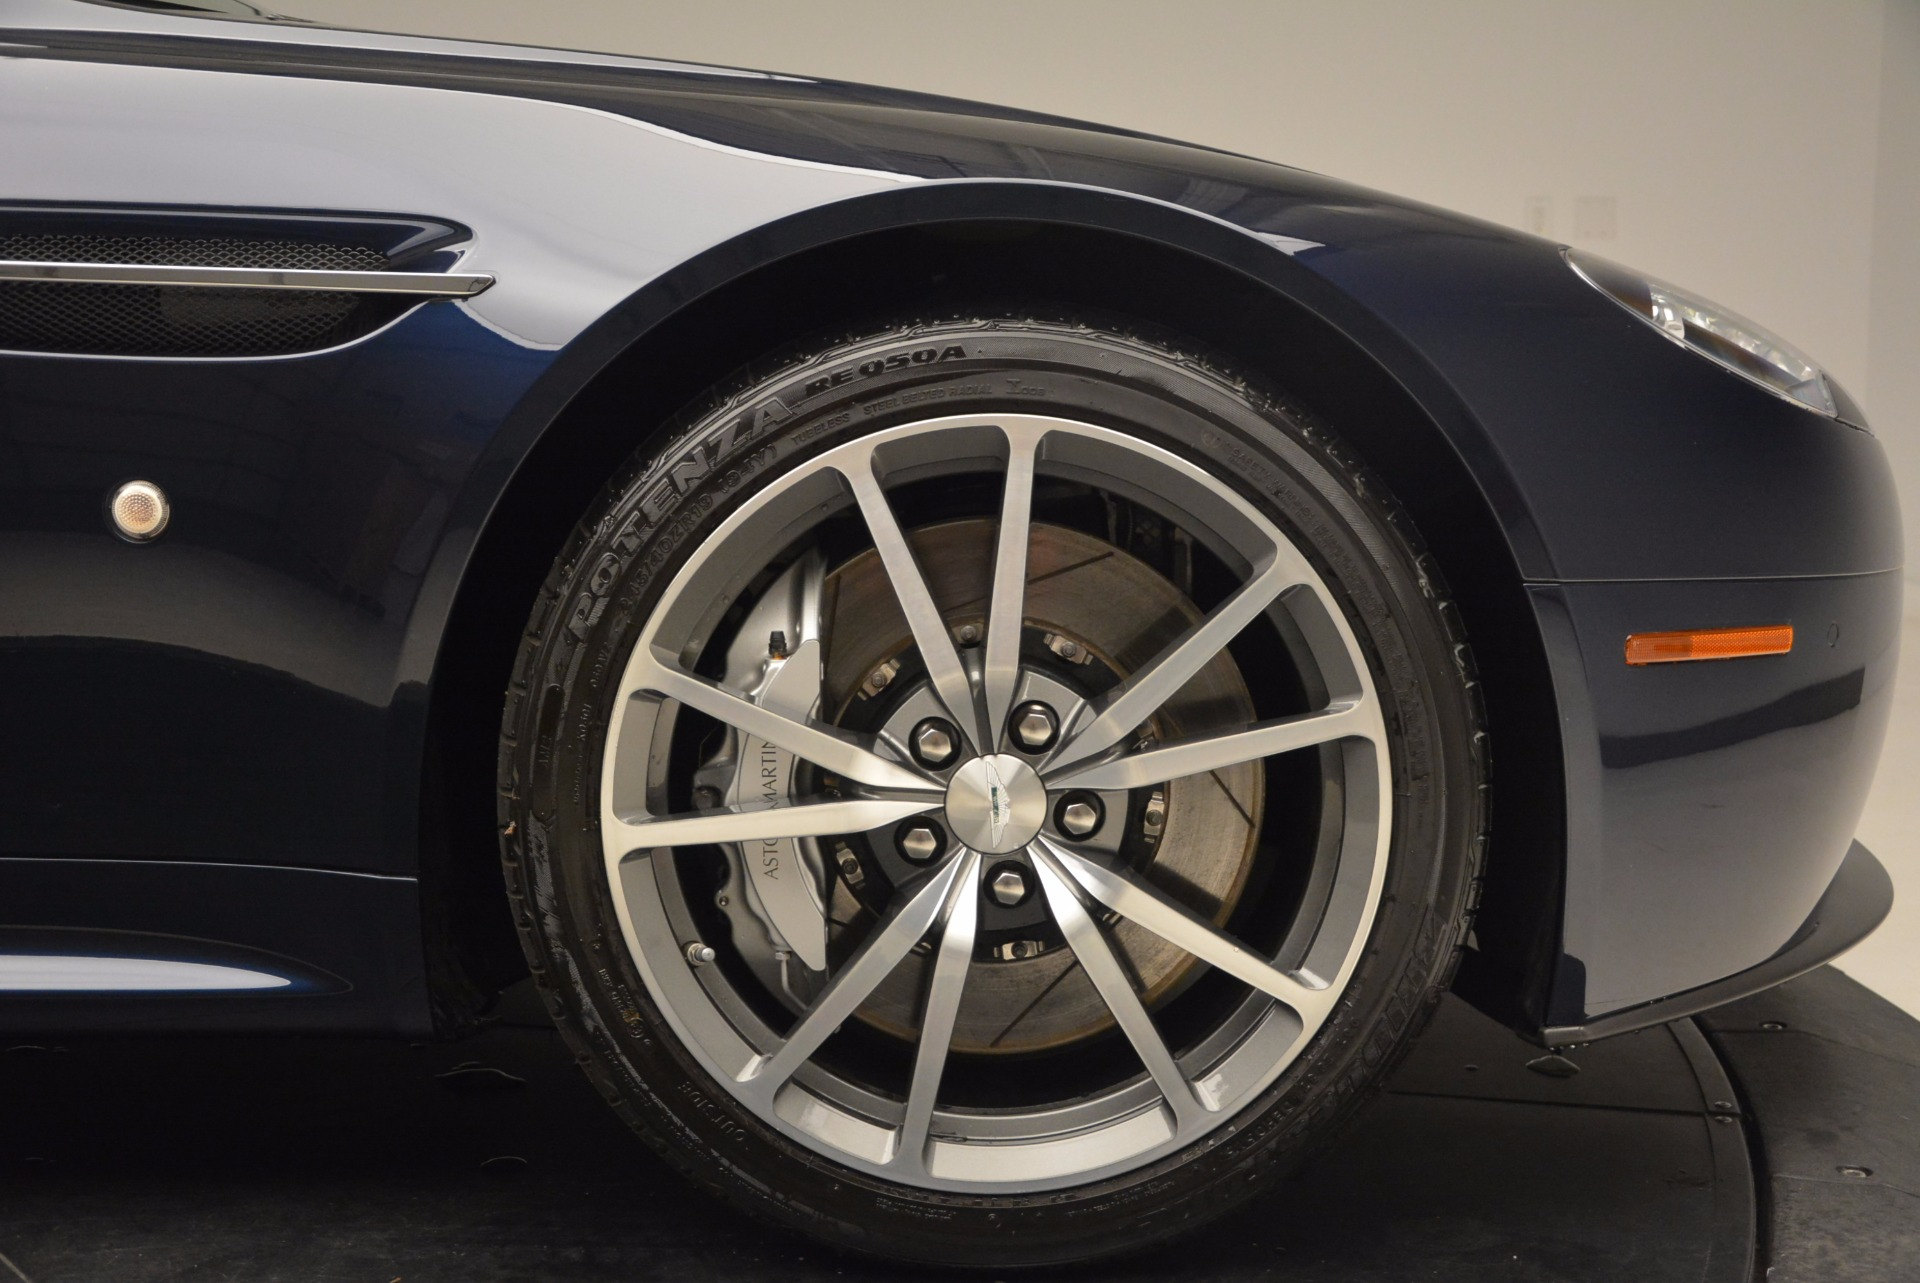 Used 2014 Aston Martin V8 Vantage Roadster For Sale In Greenwich, CT 1623_p25